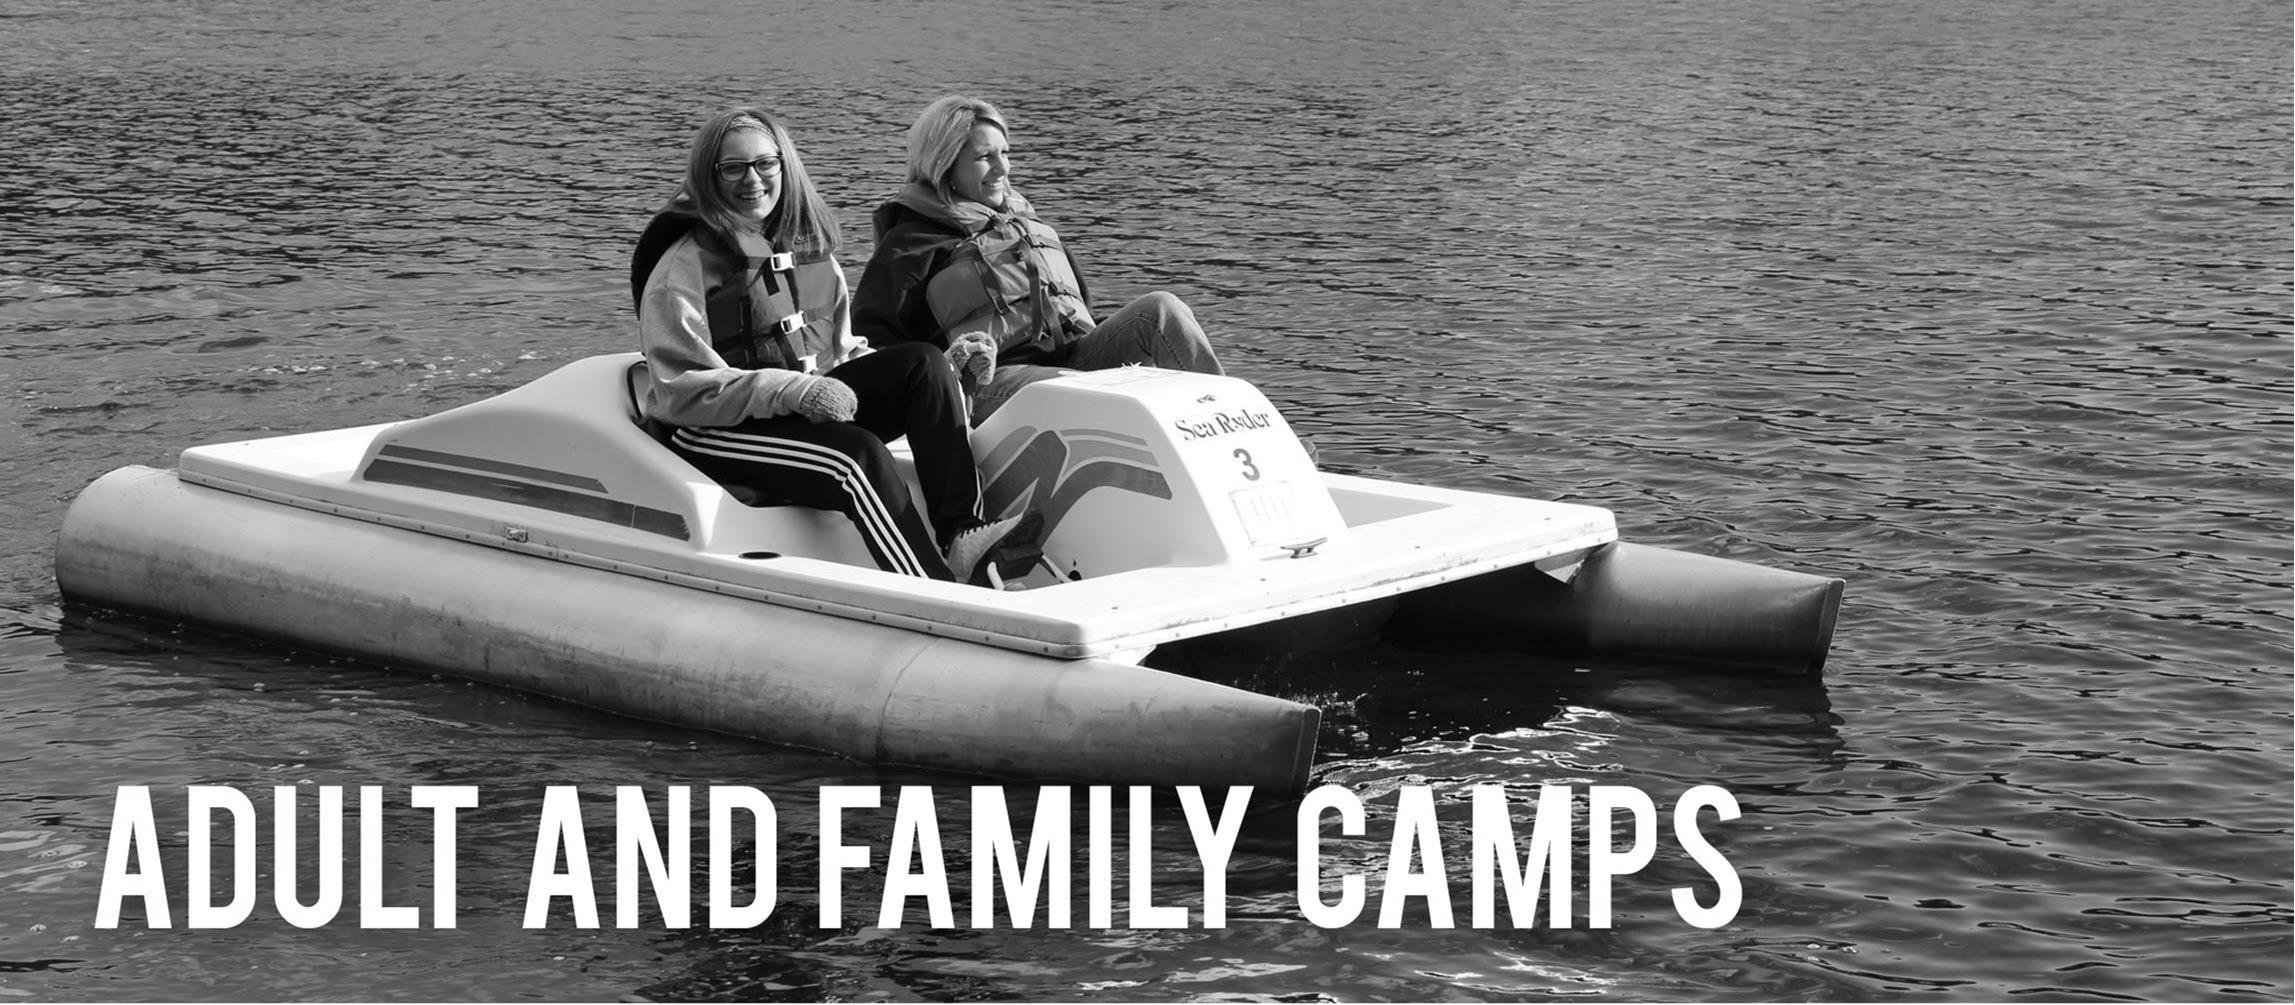 Find out more info on our Adult/Family Camps